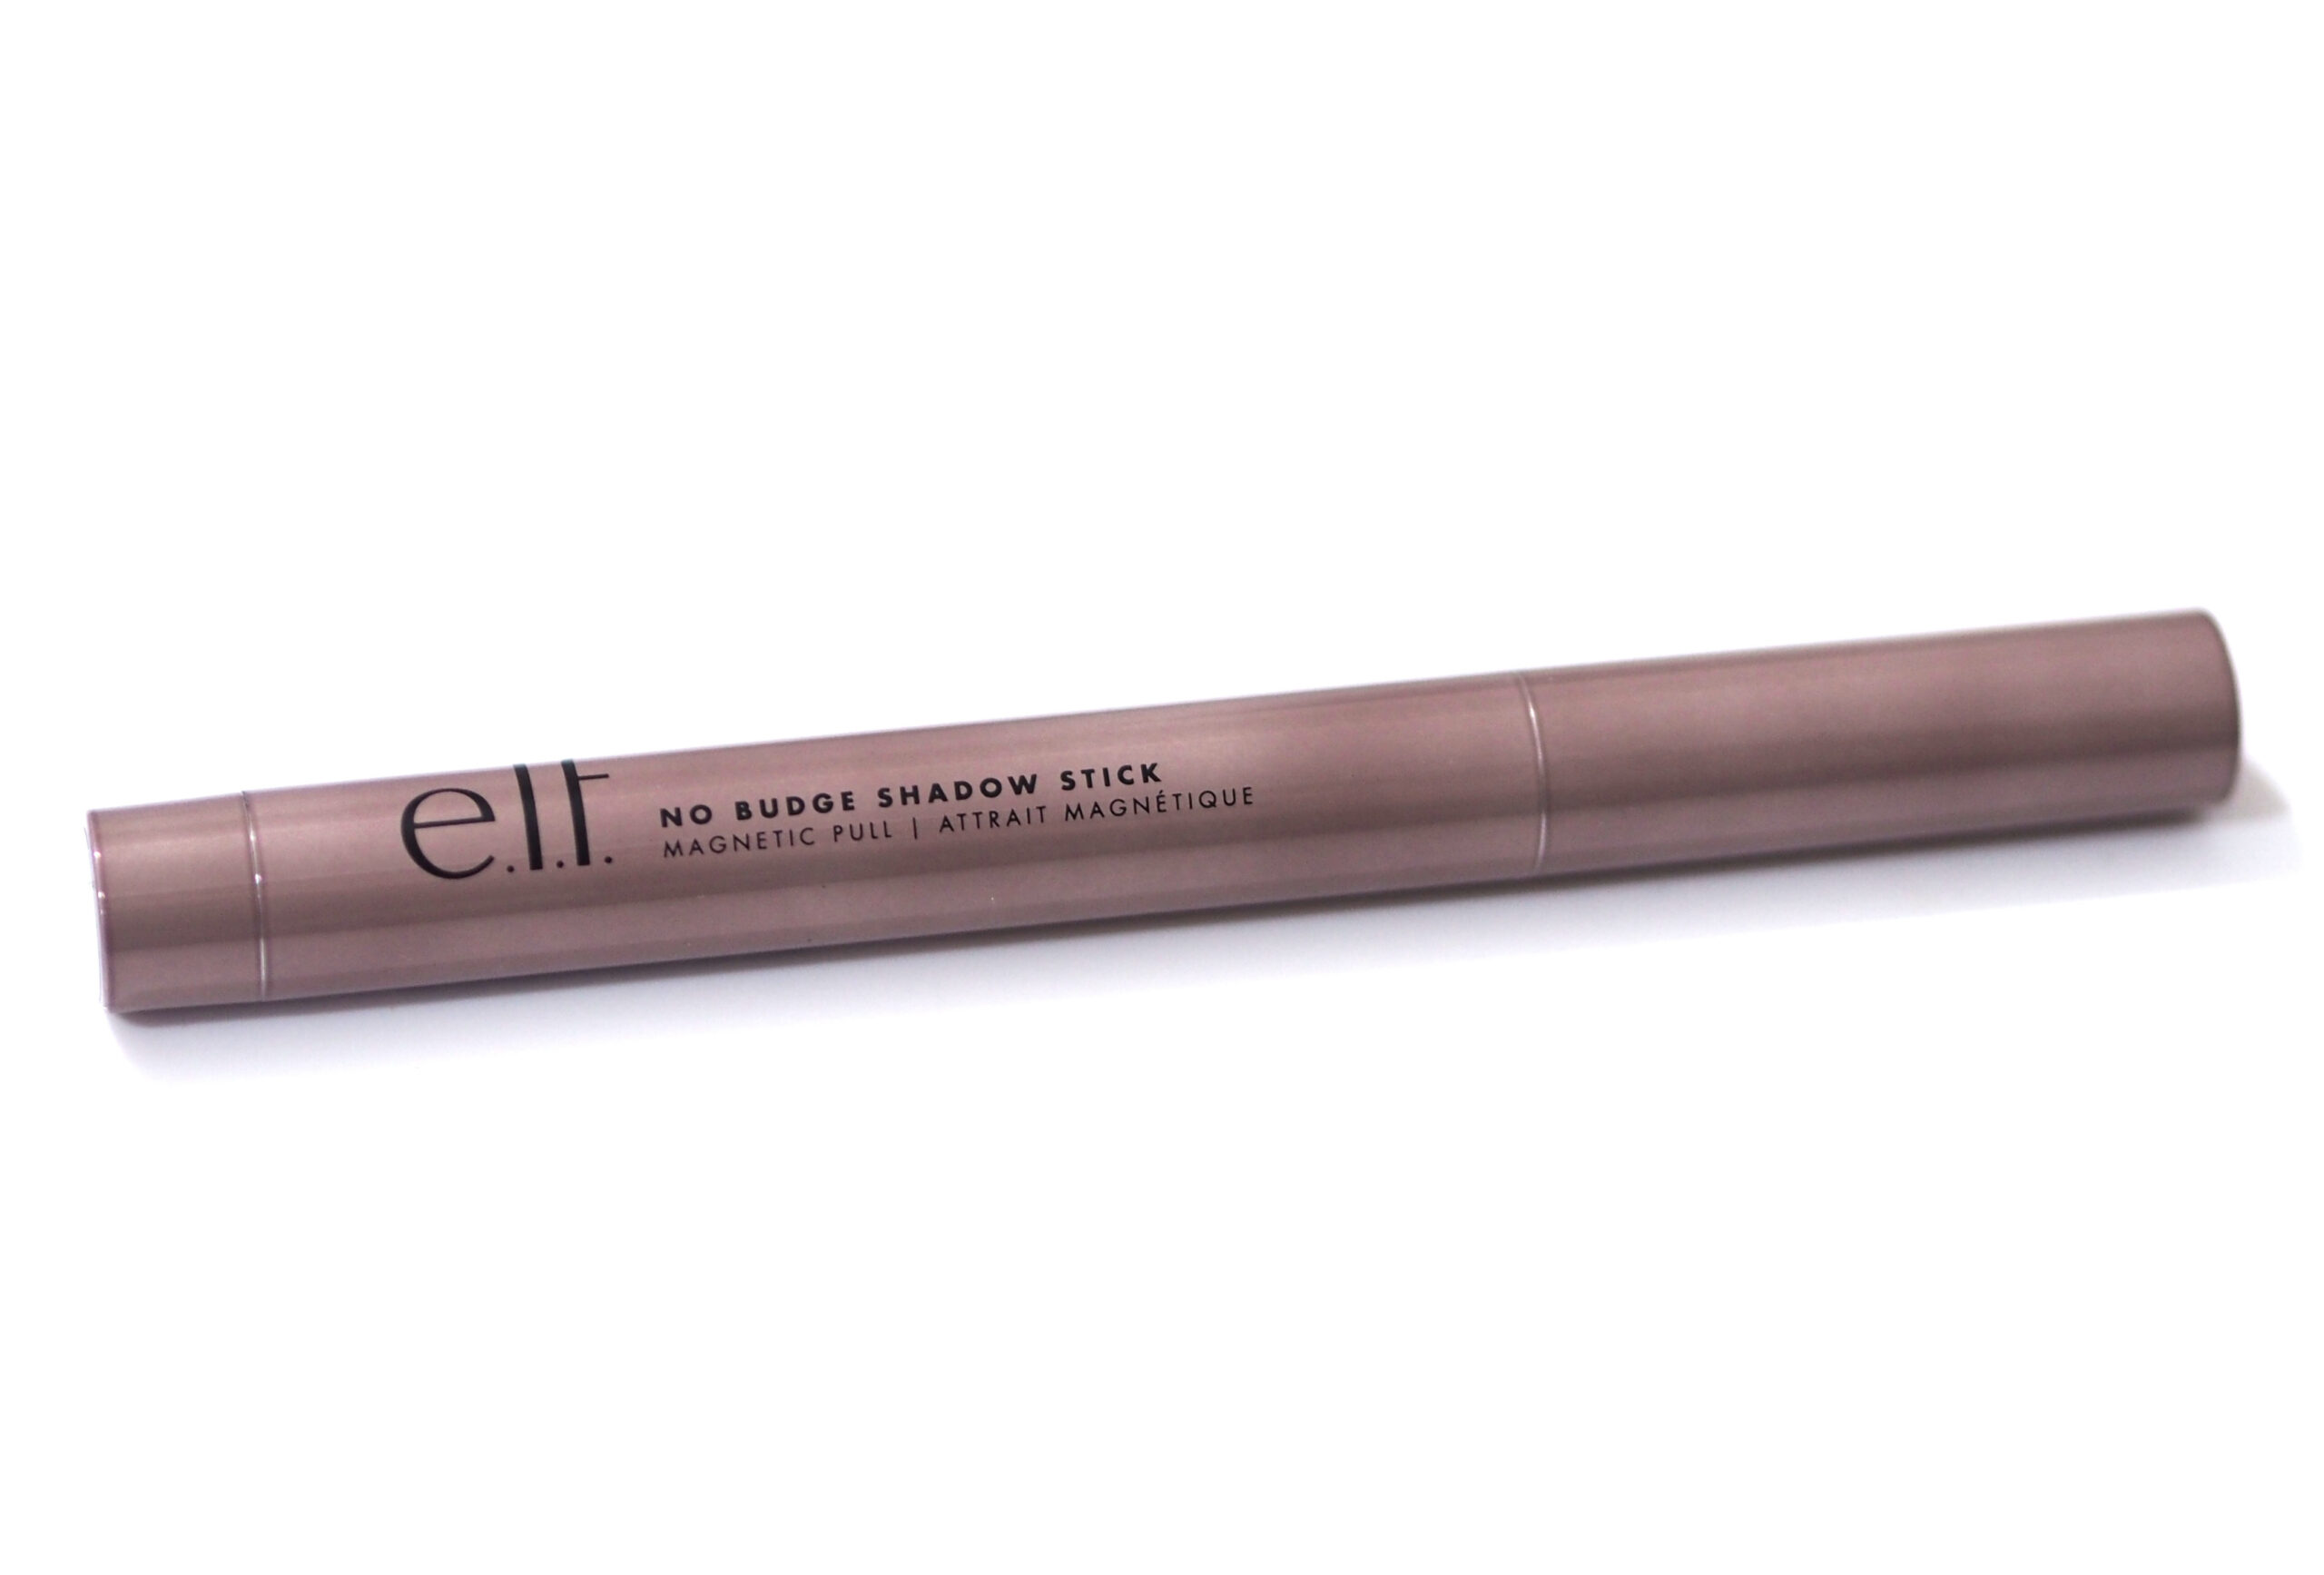 ELF No Budge Shadow Stick Review Swatches